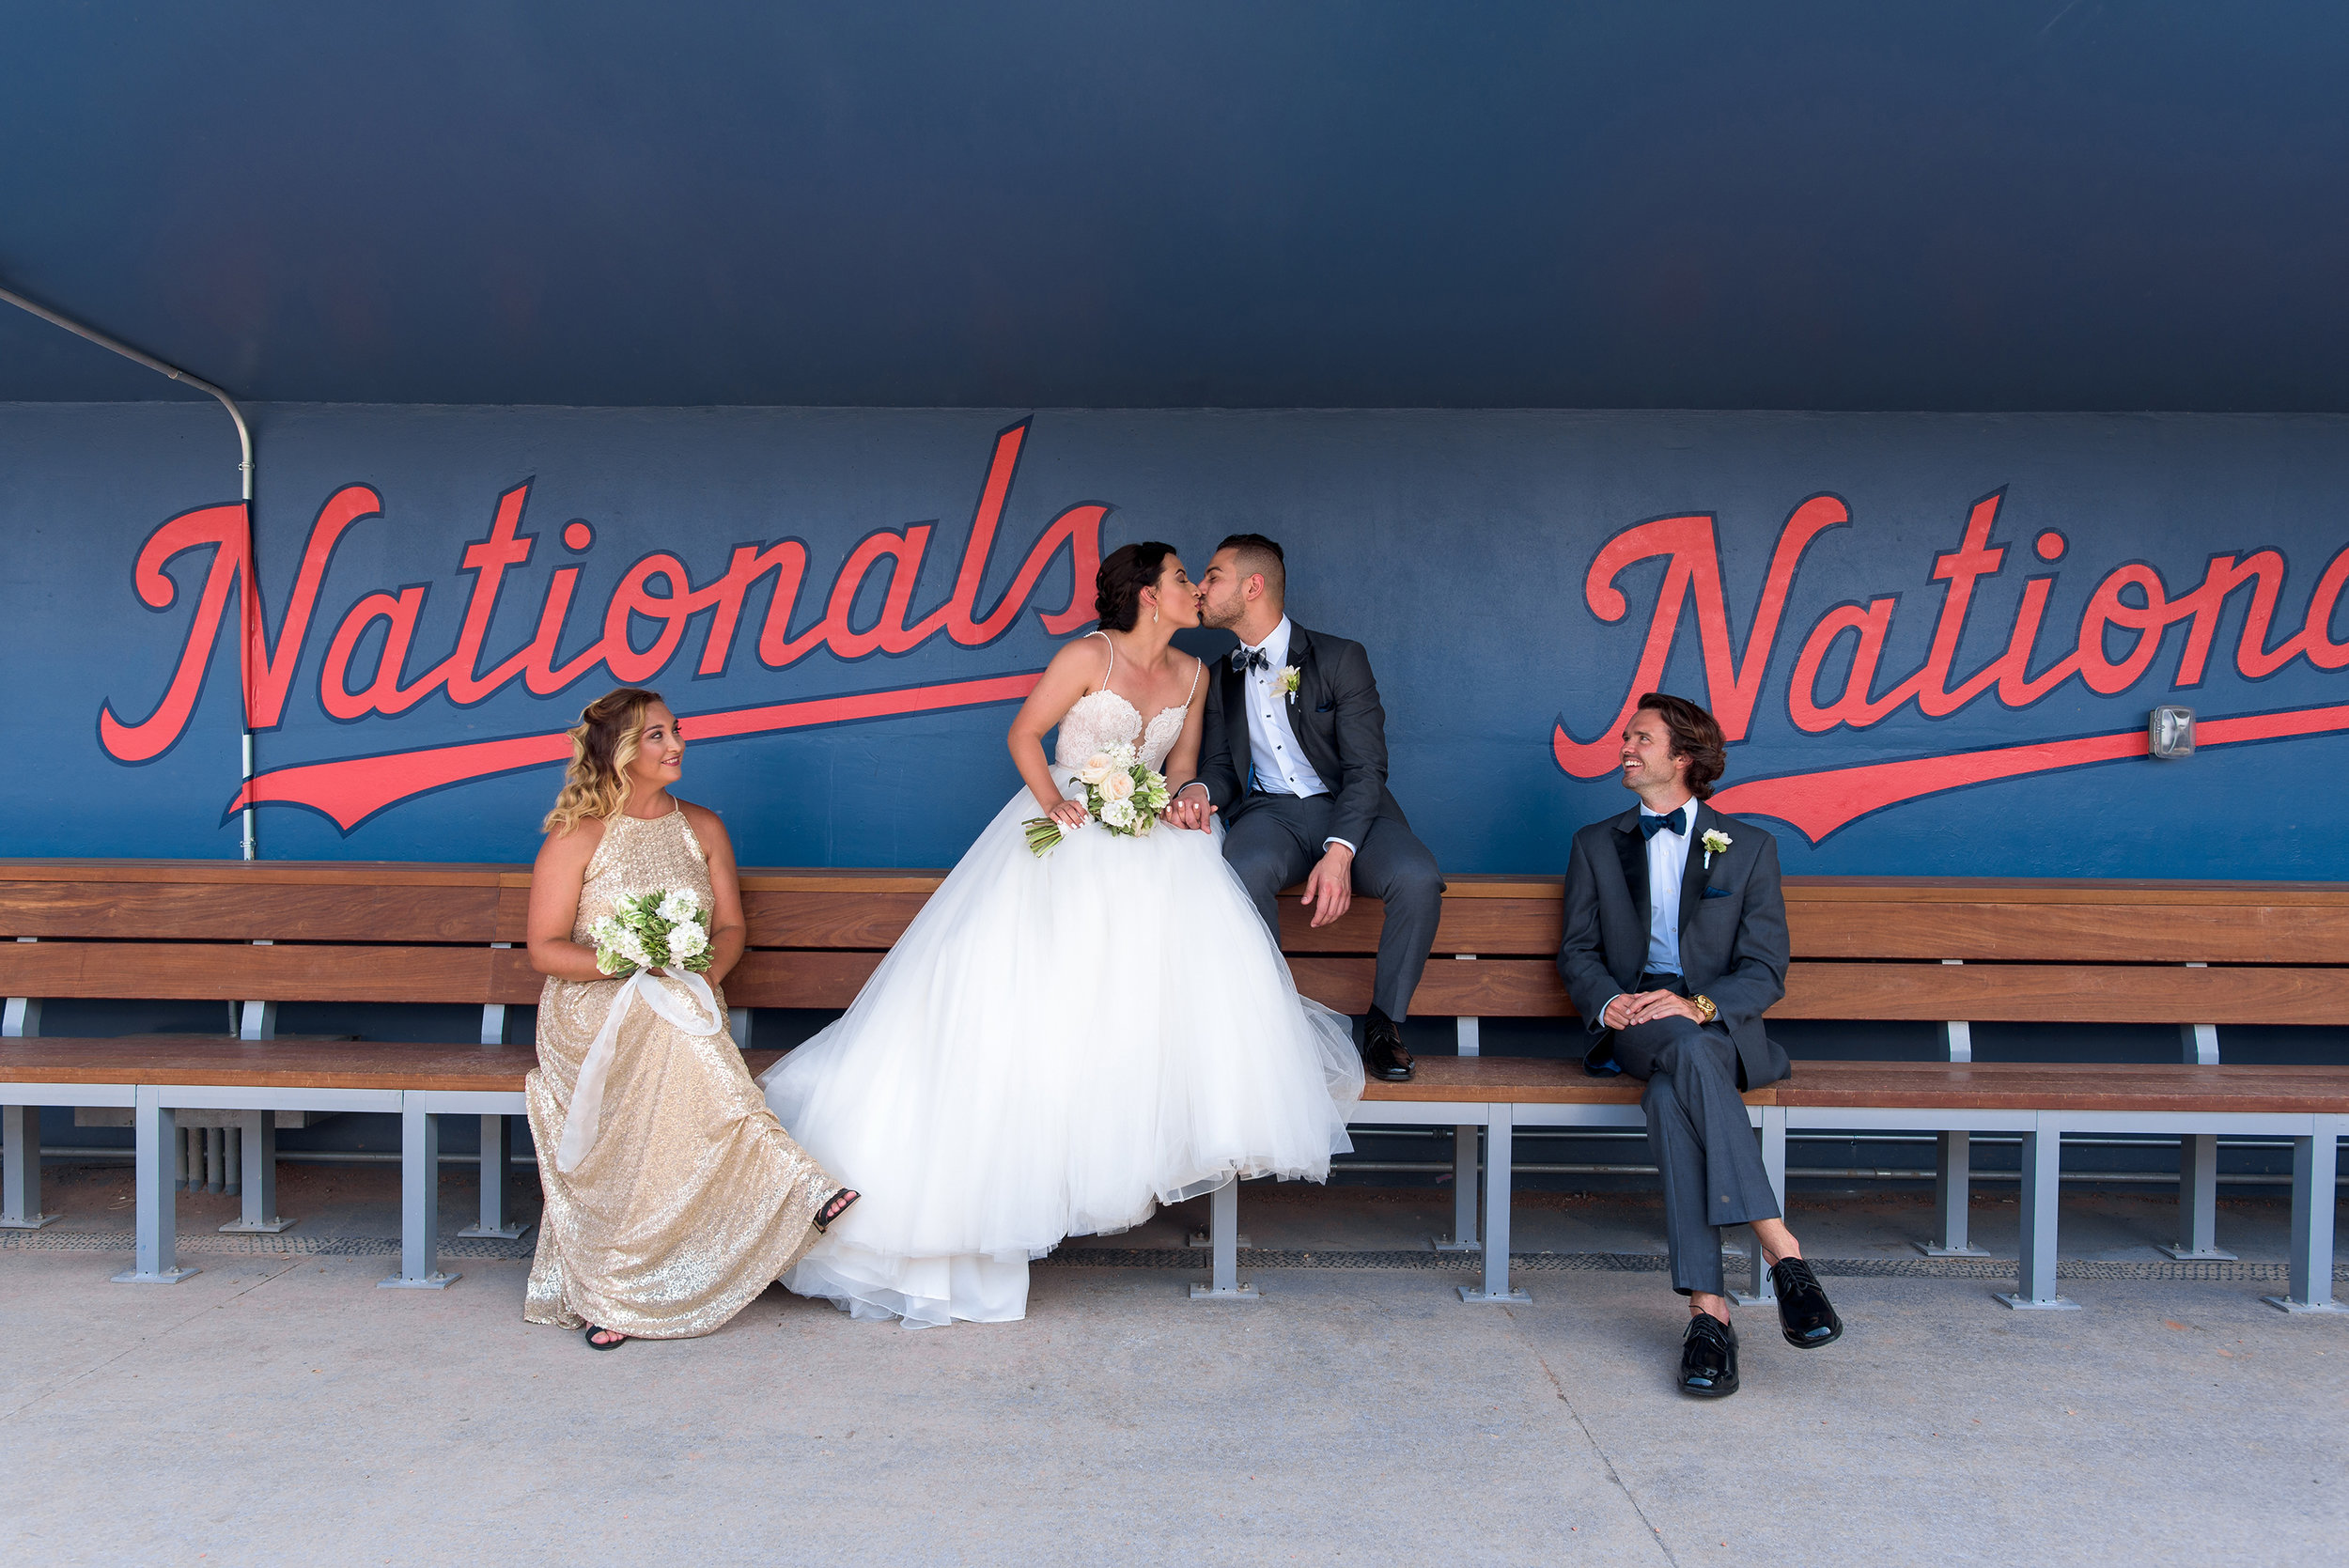 Once-in-a-lifetime photo opportunities! Photos by Robert Madrid Photography.